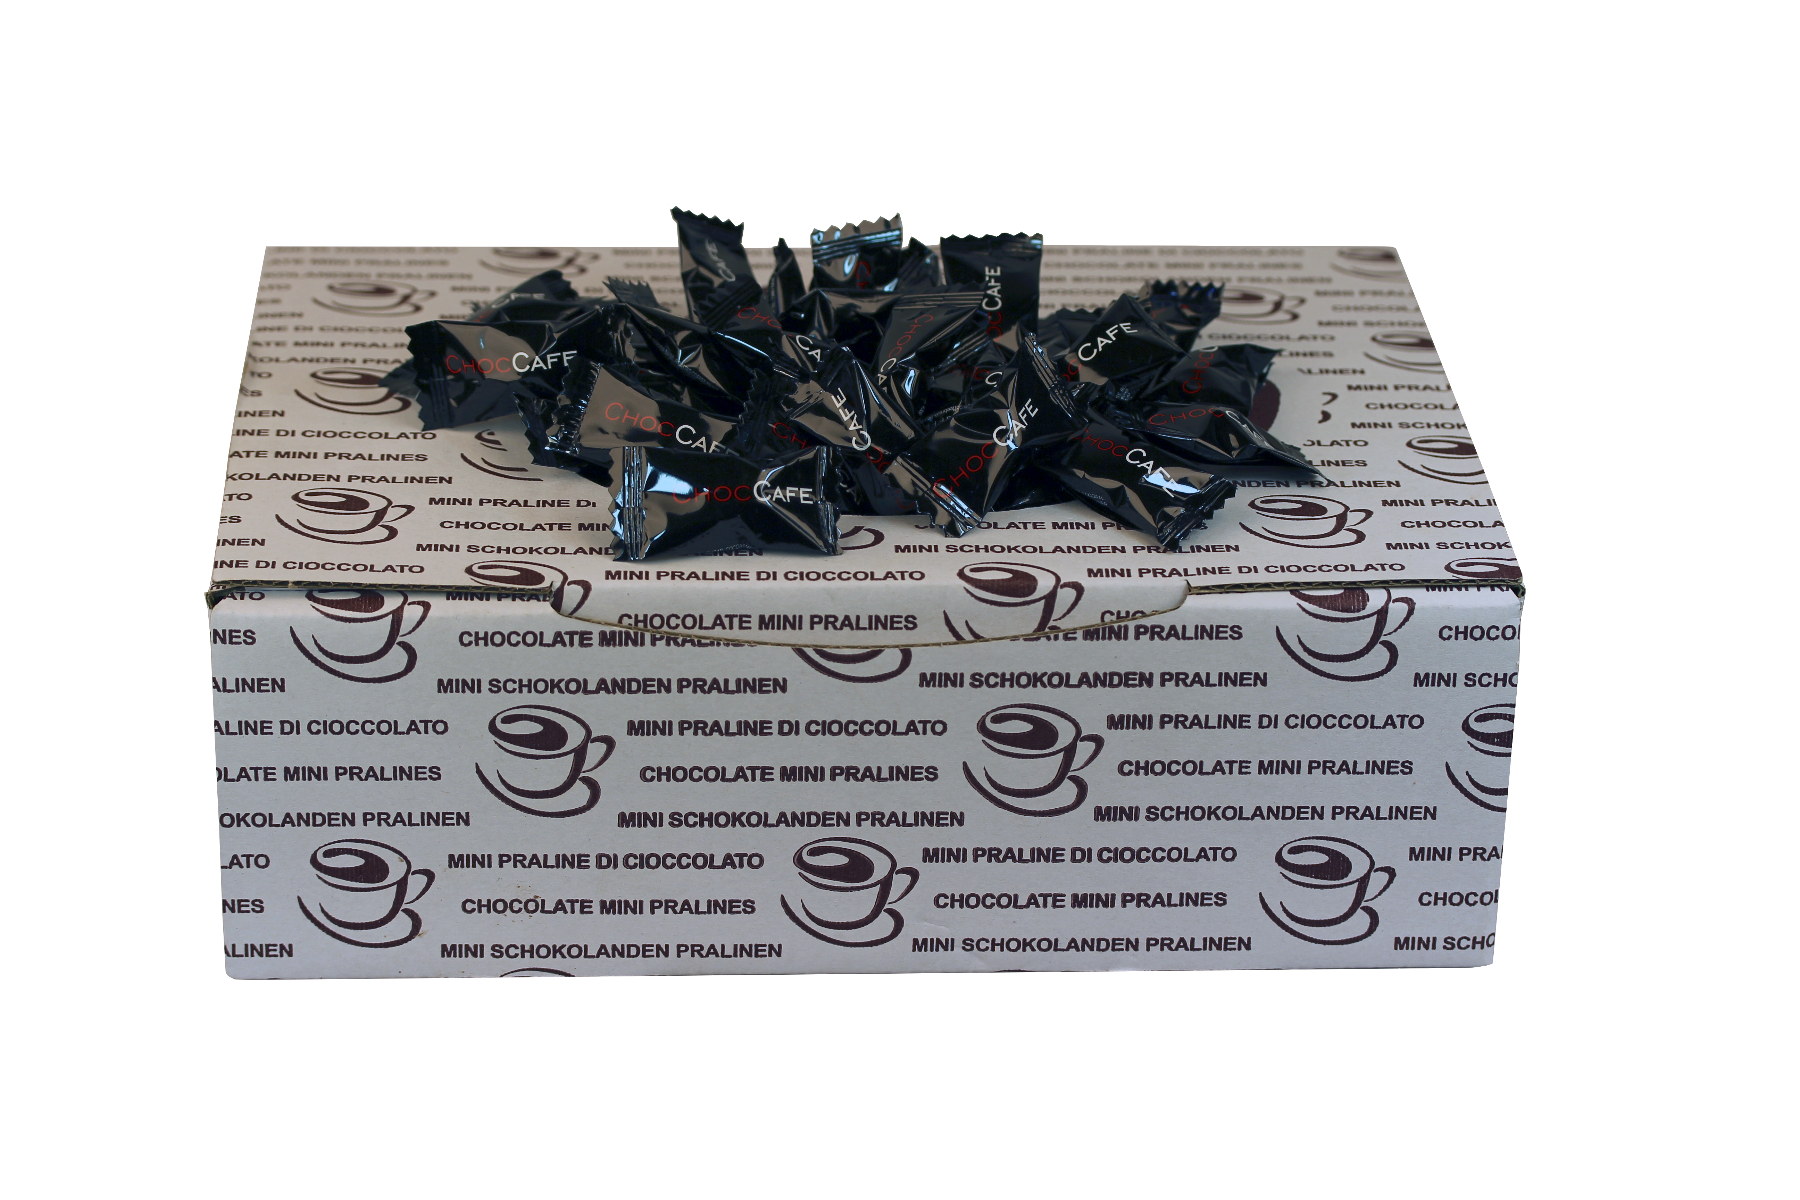 Choc Cafe koffieboon met pure chocolade omhulling (1kg)